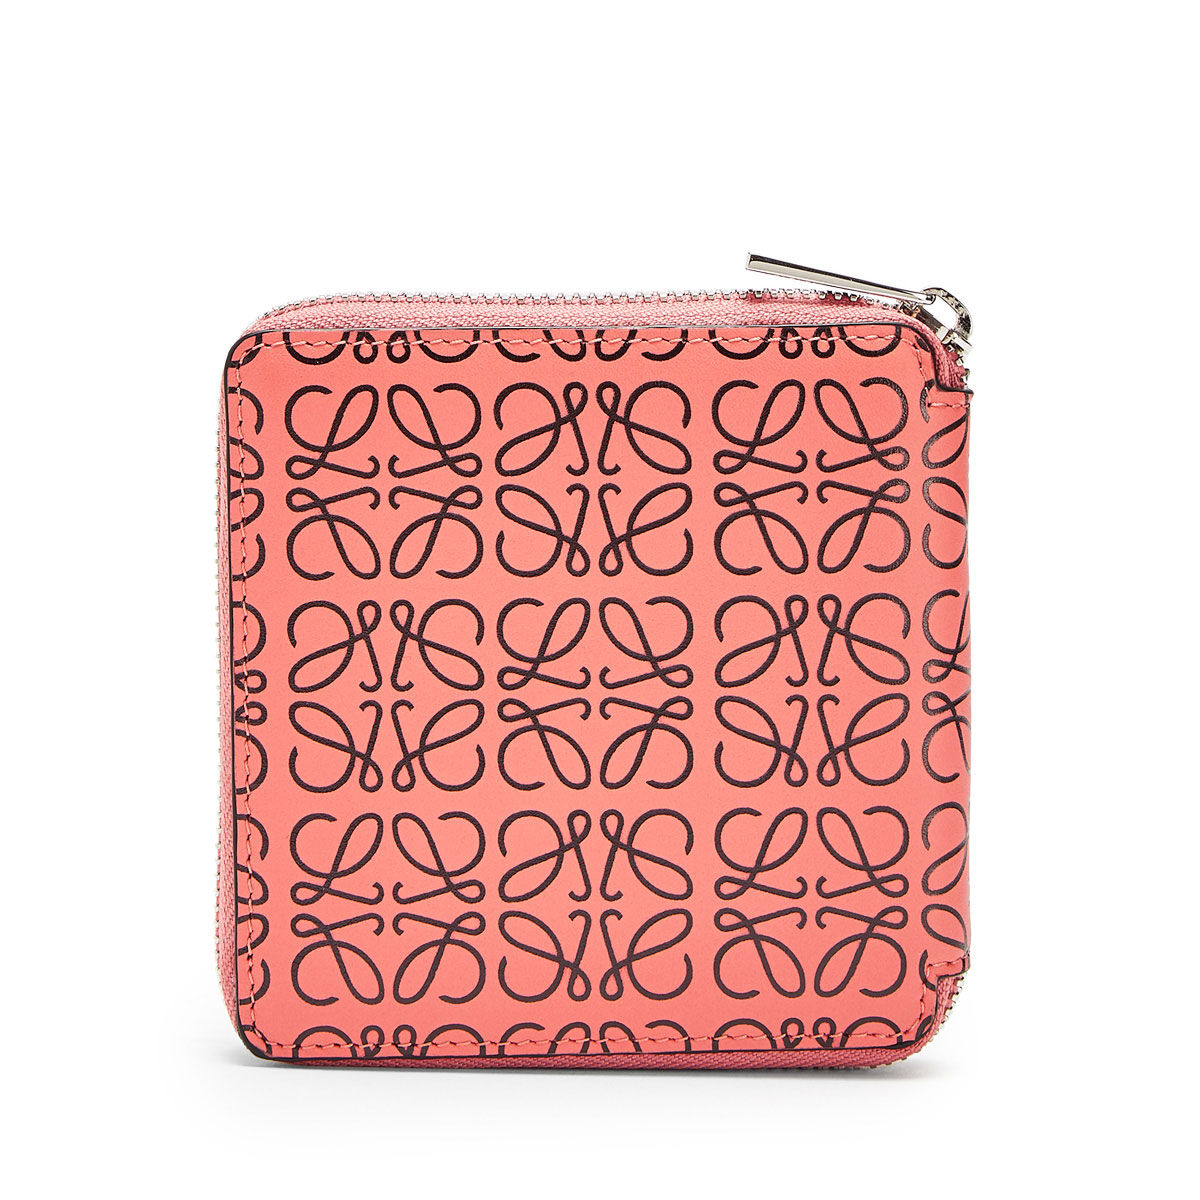 LOEWE Square Zip Wallet Pink Tulip/Black all